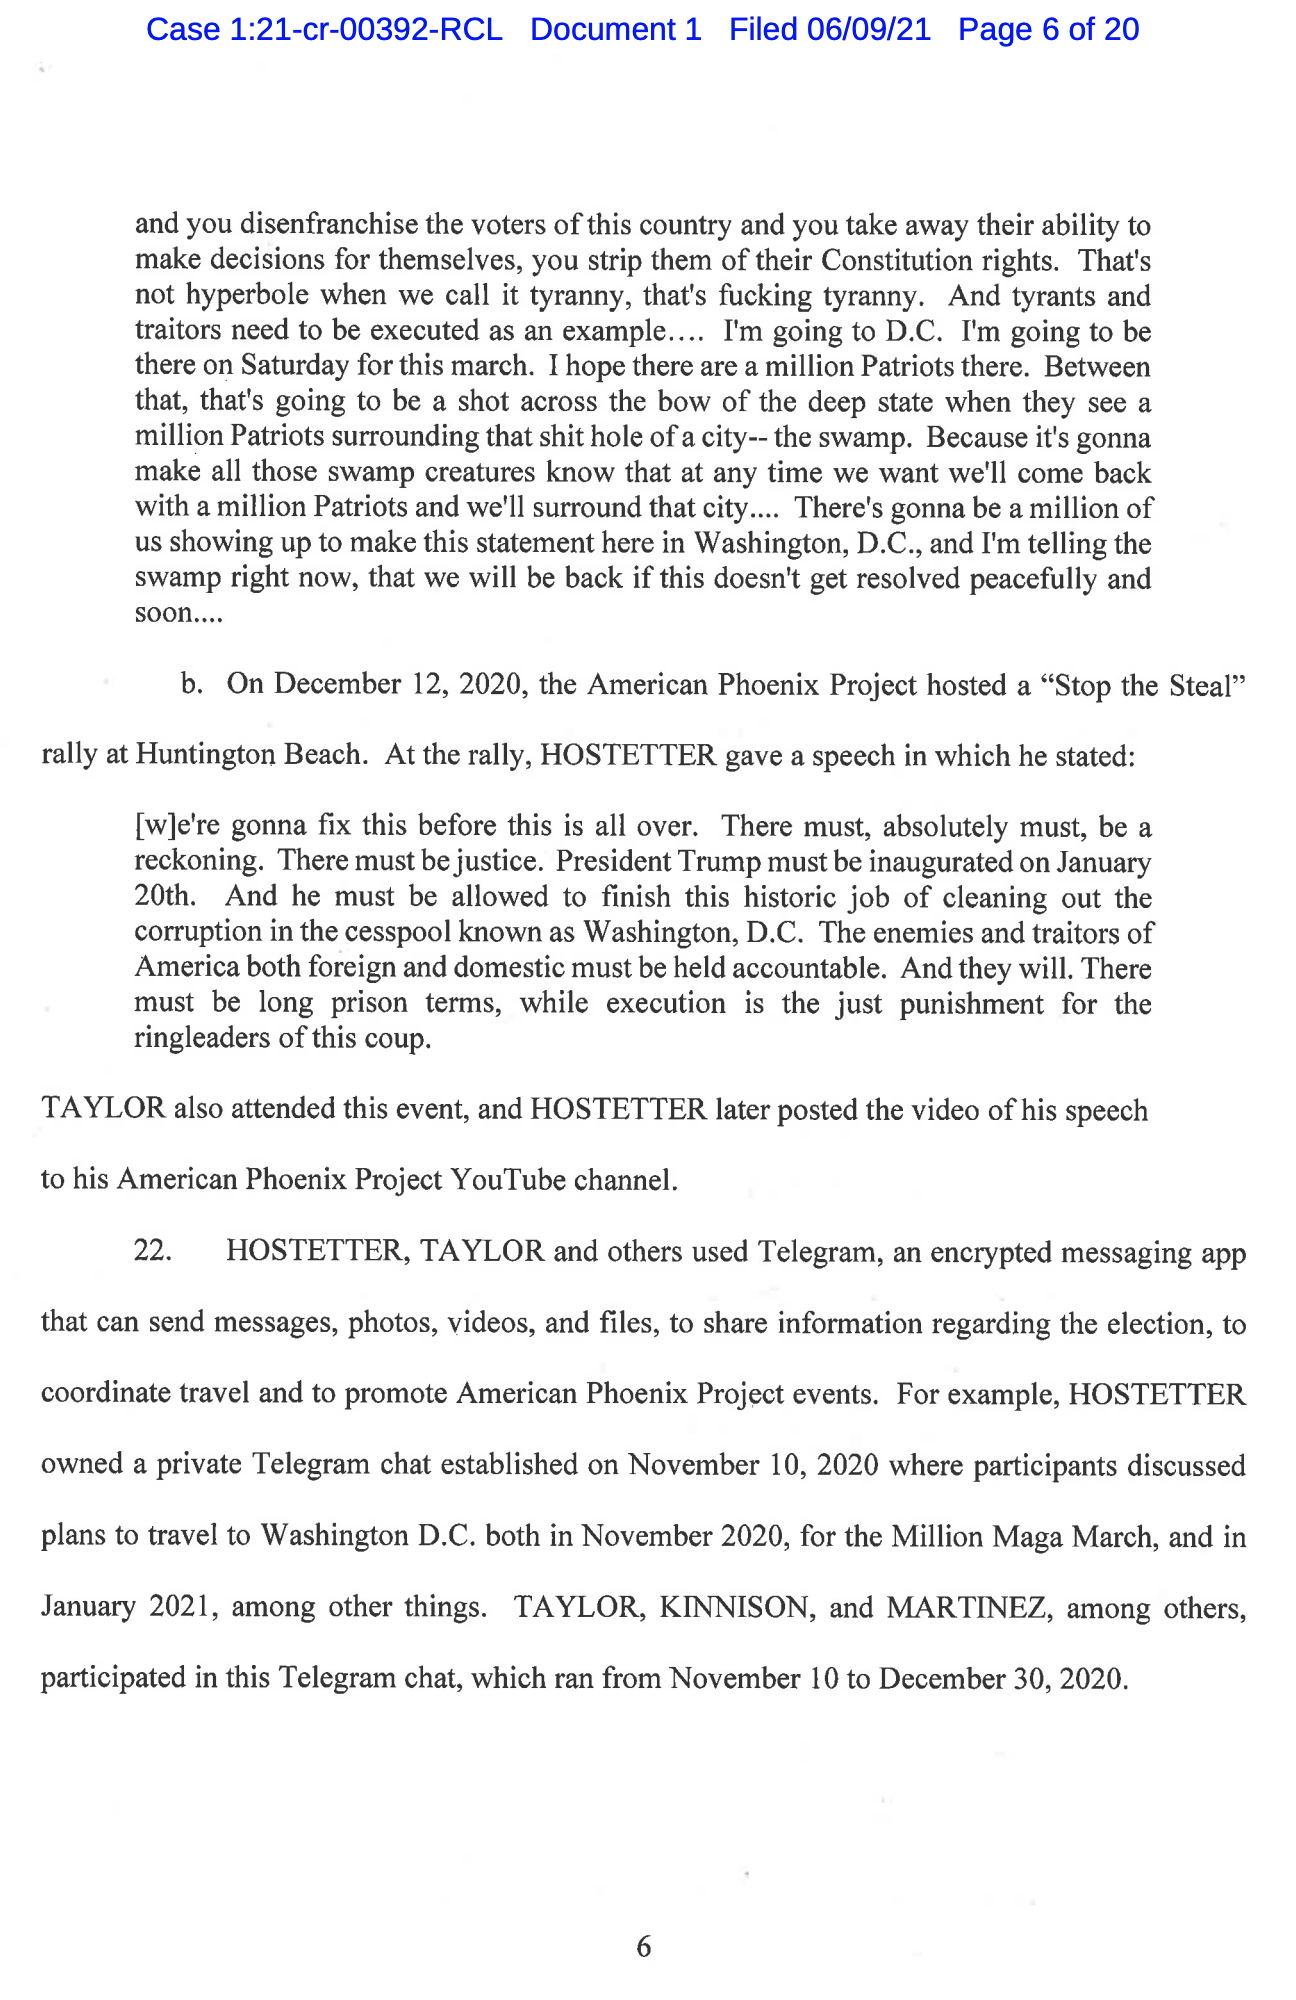 Screen-Shot-2021-06-11-at-12.23.27-PM Six Additional Trump Cult Members Indicted For Jan 6 Insurrection Crime Featured Politics Terrorism Top Stories